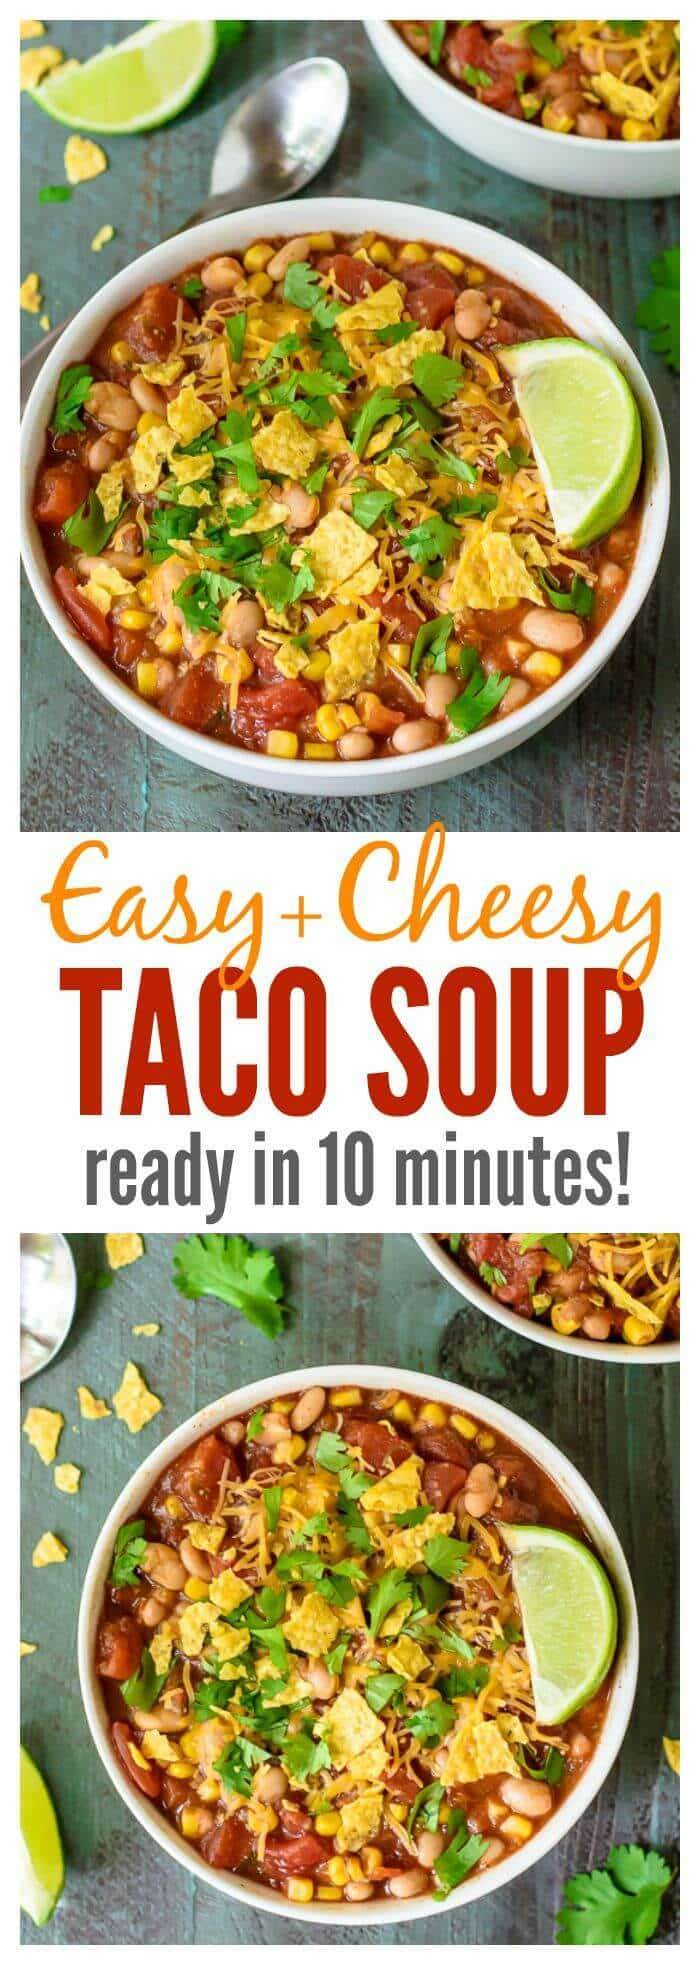 Cheesy EASY Taco Soup. Ready in 10 minutes and our entire family loves it!